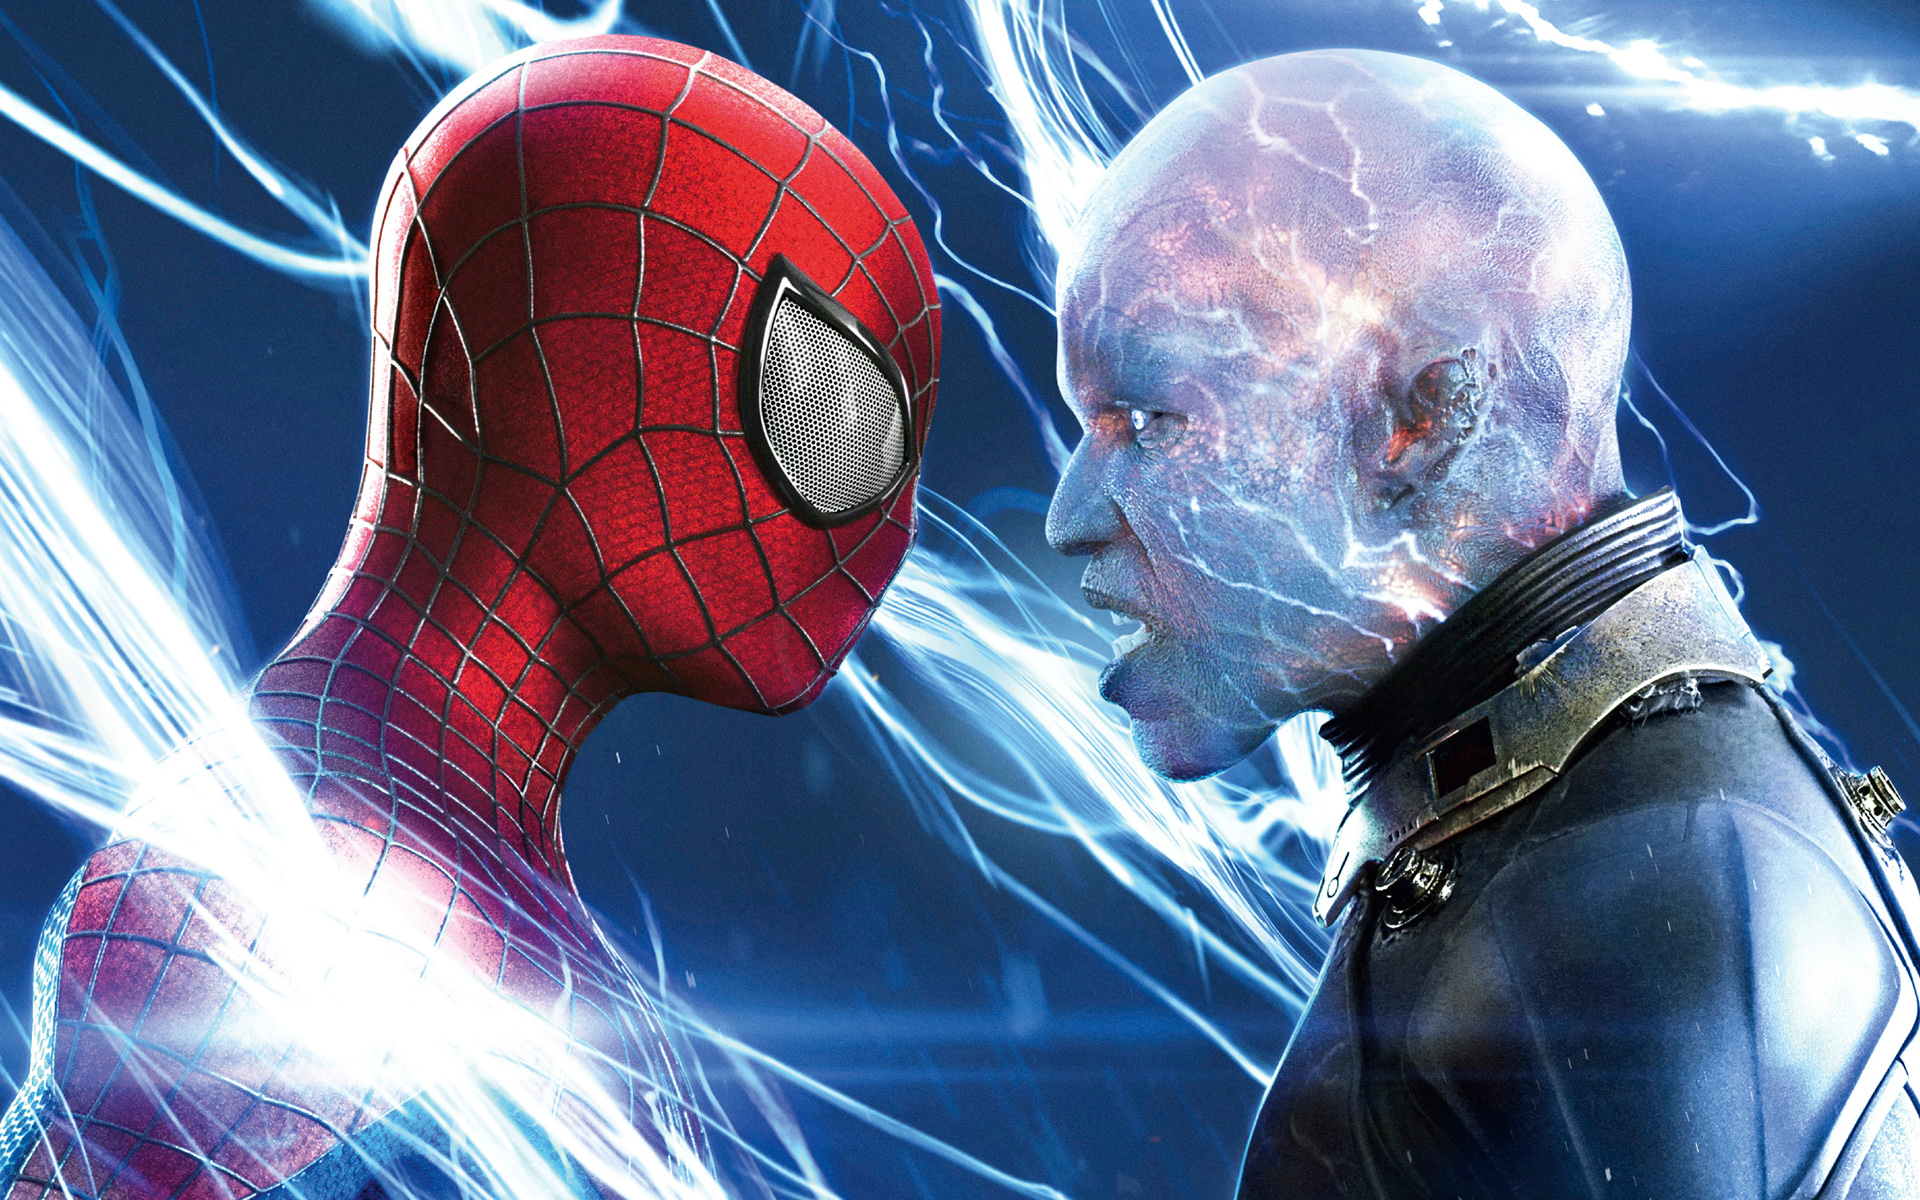 Spiderman Electro Max Dillon Wallpapers HD Wallpapers 1920x1200